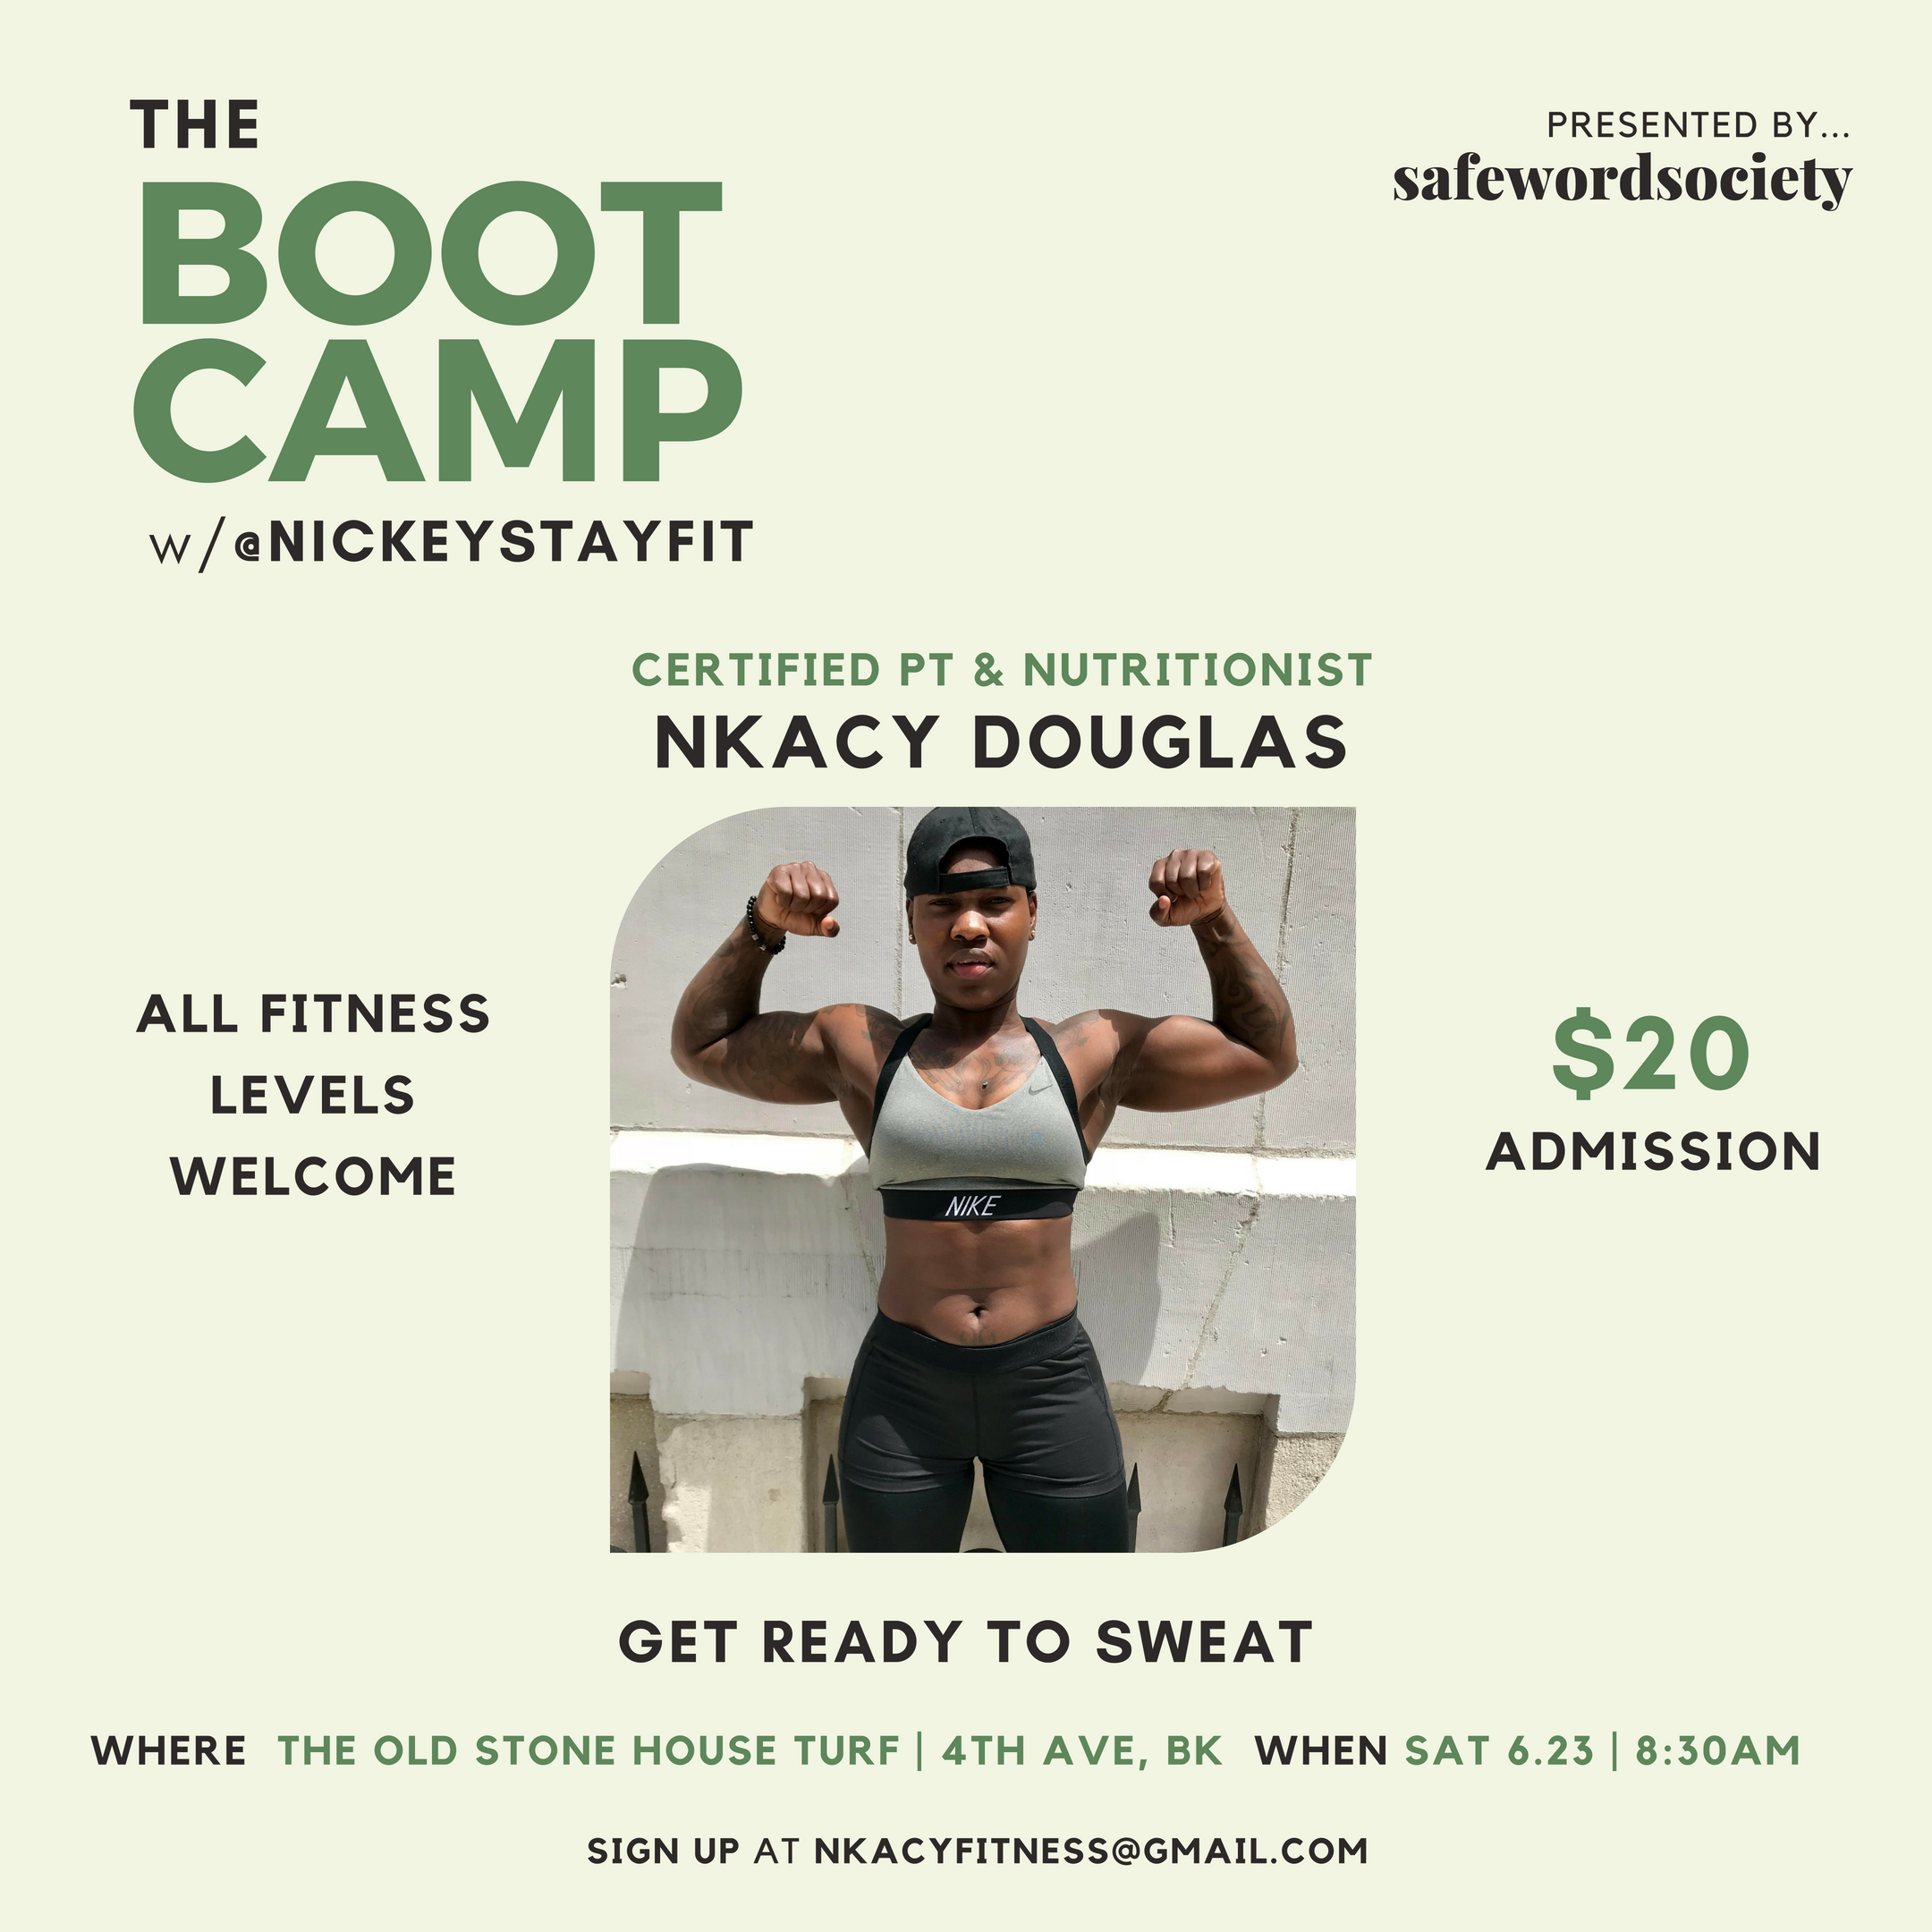 SWS BOOT CAMP FLYER (4).png